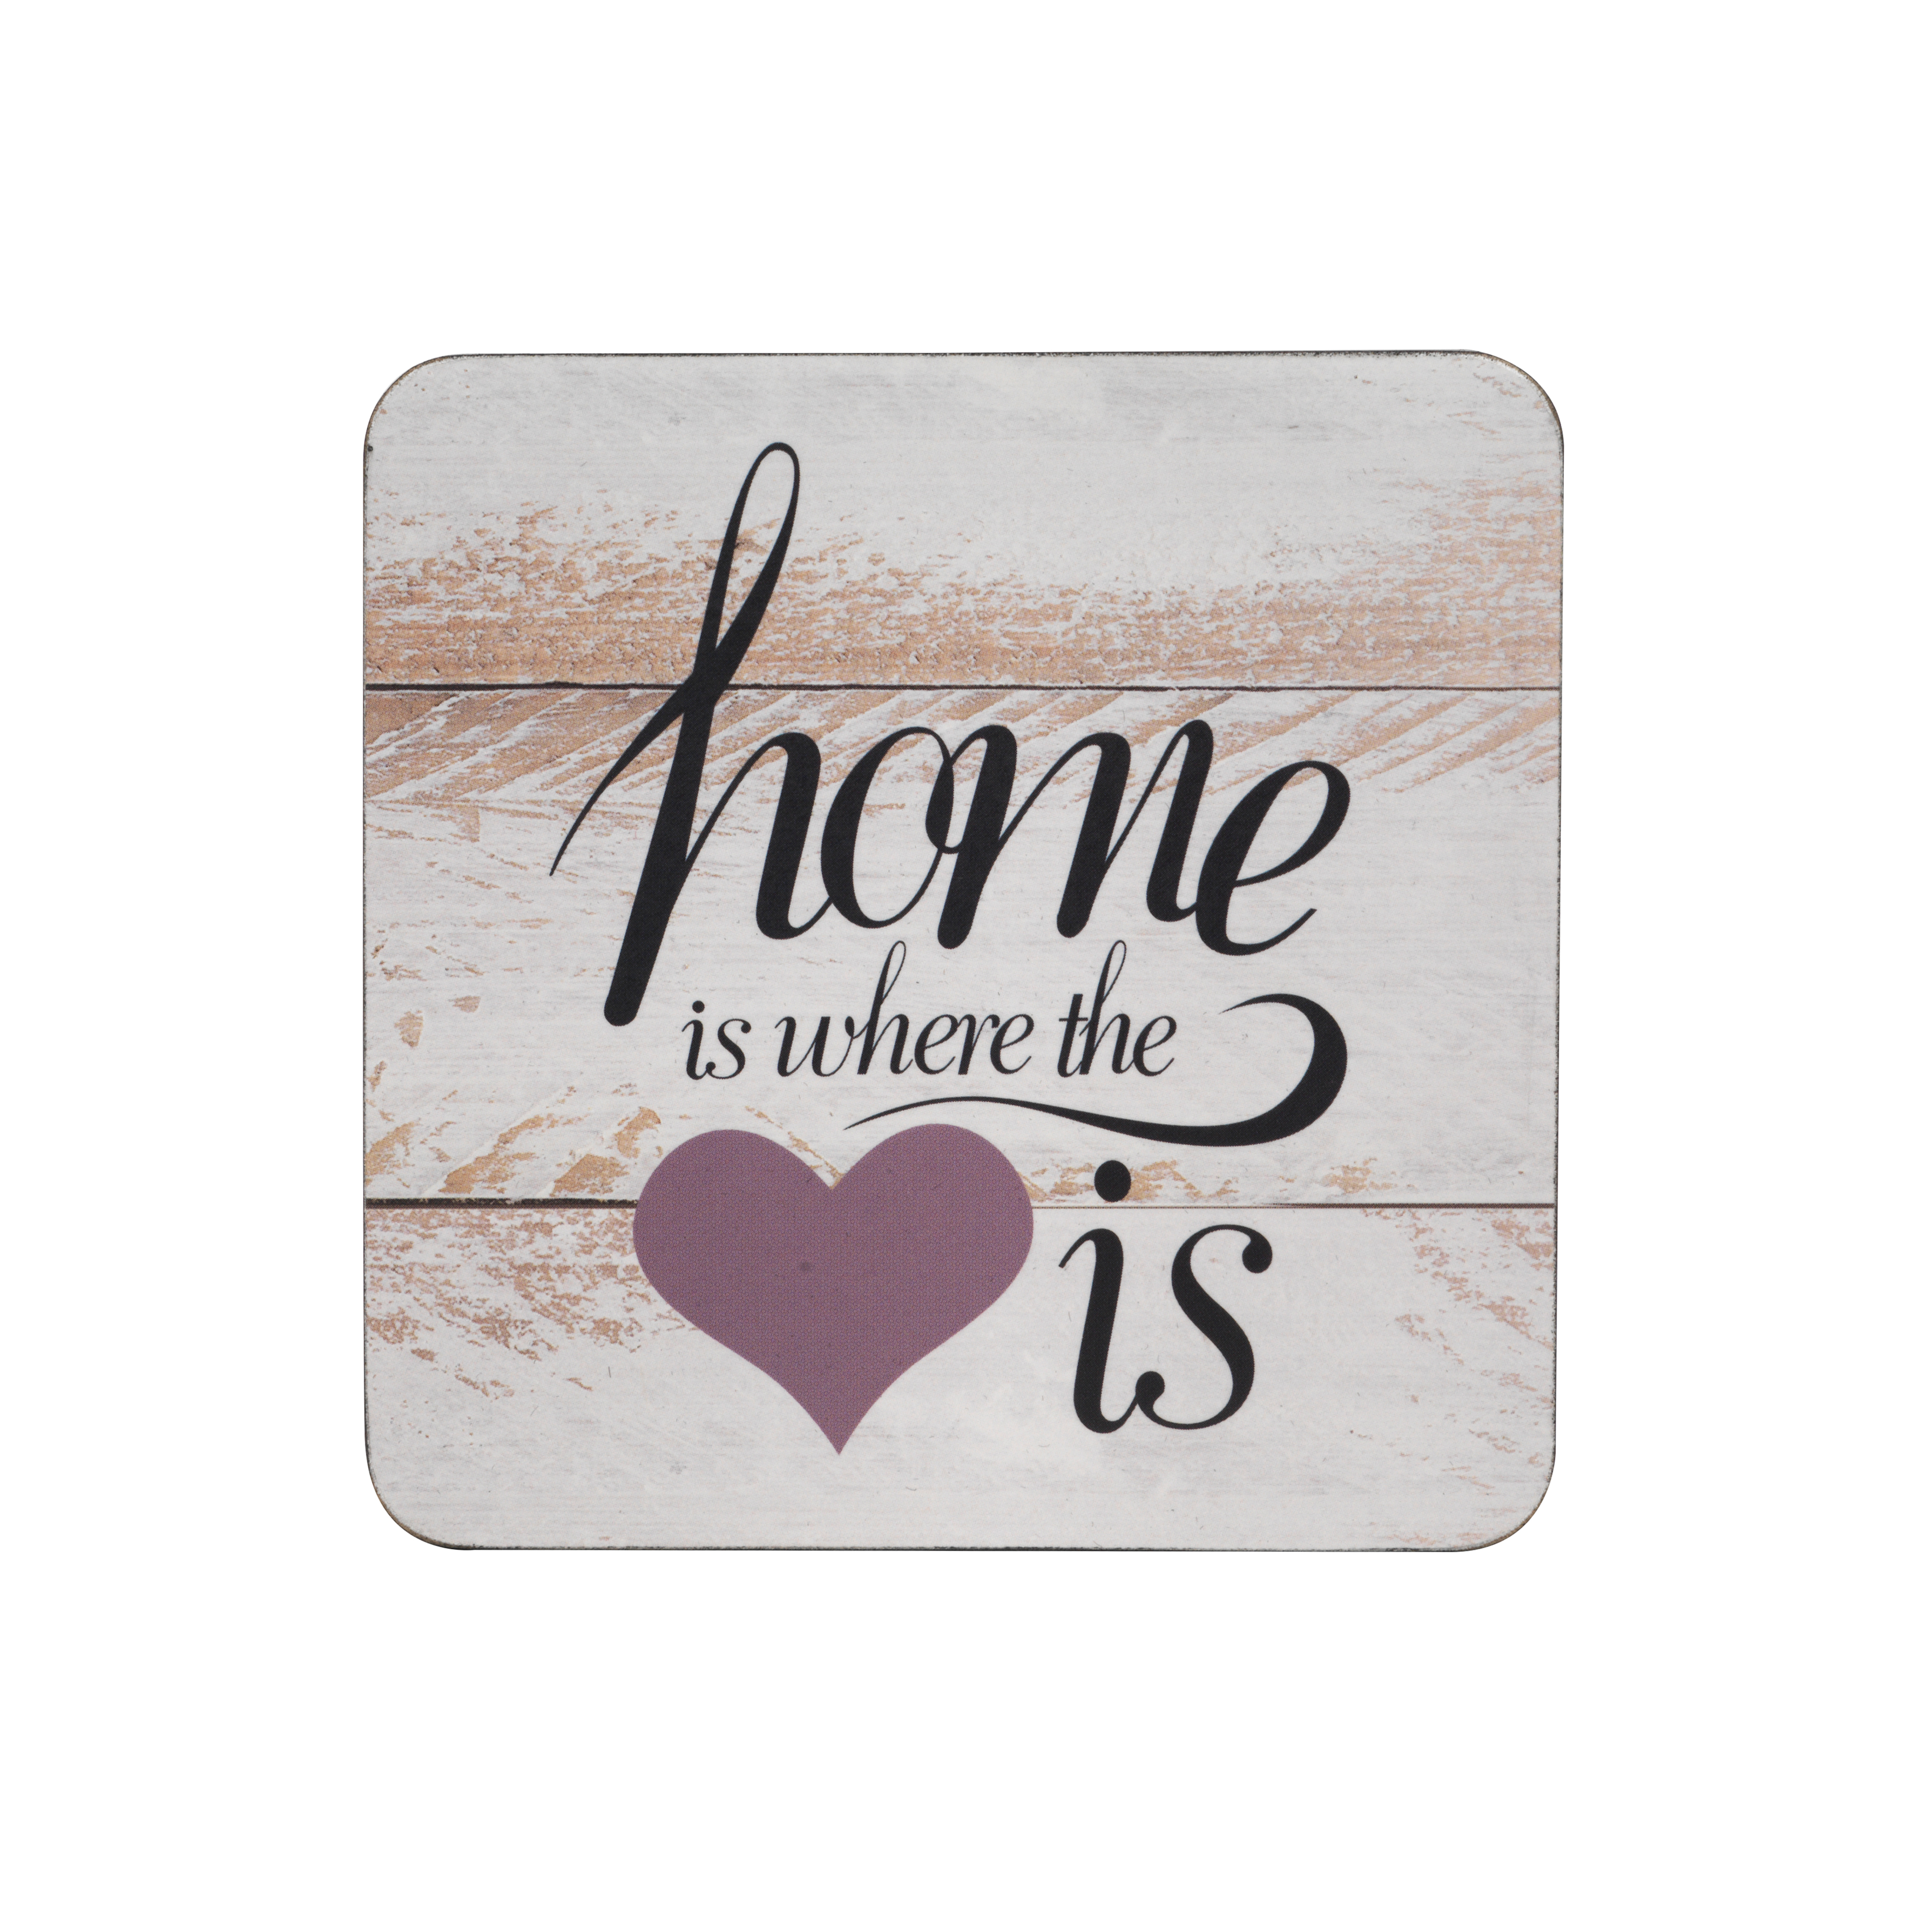 inspire tw290410 luxury home is where the heart is coasters 10 5 x